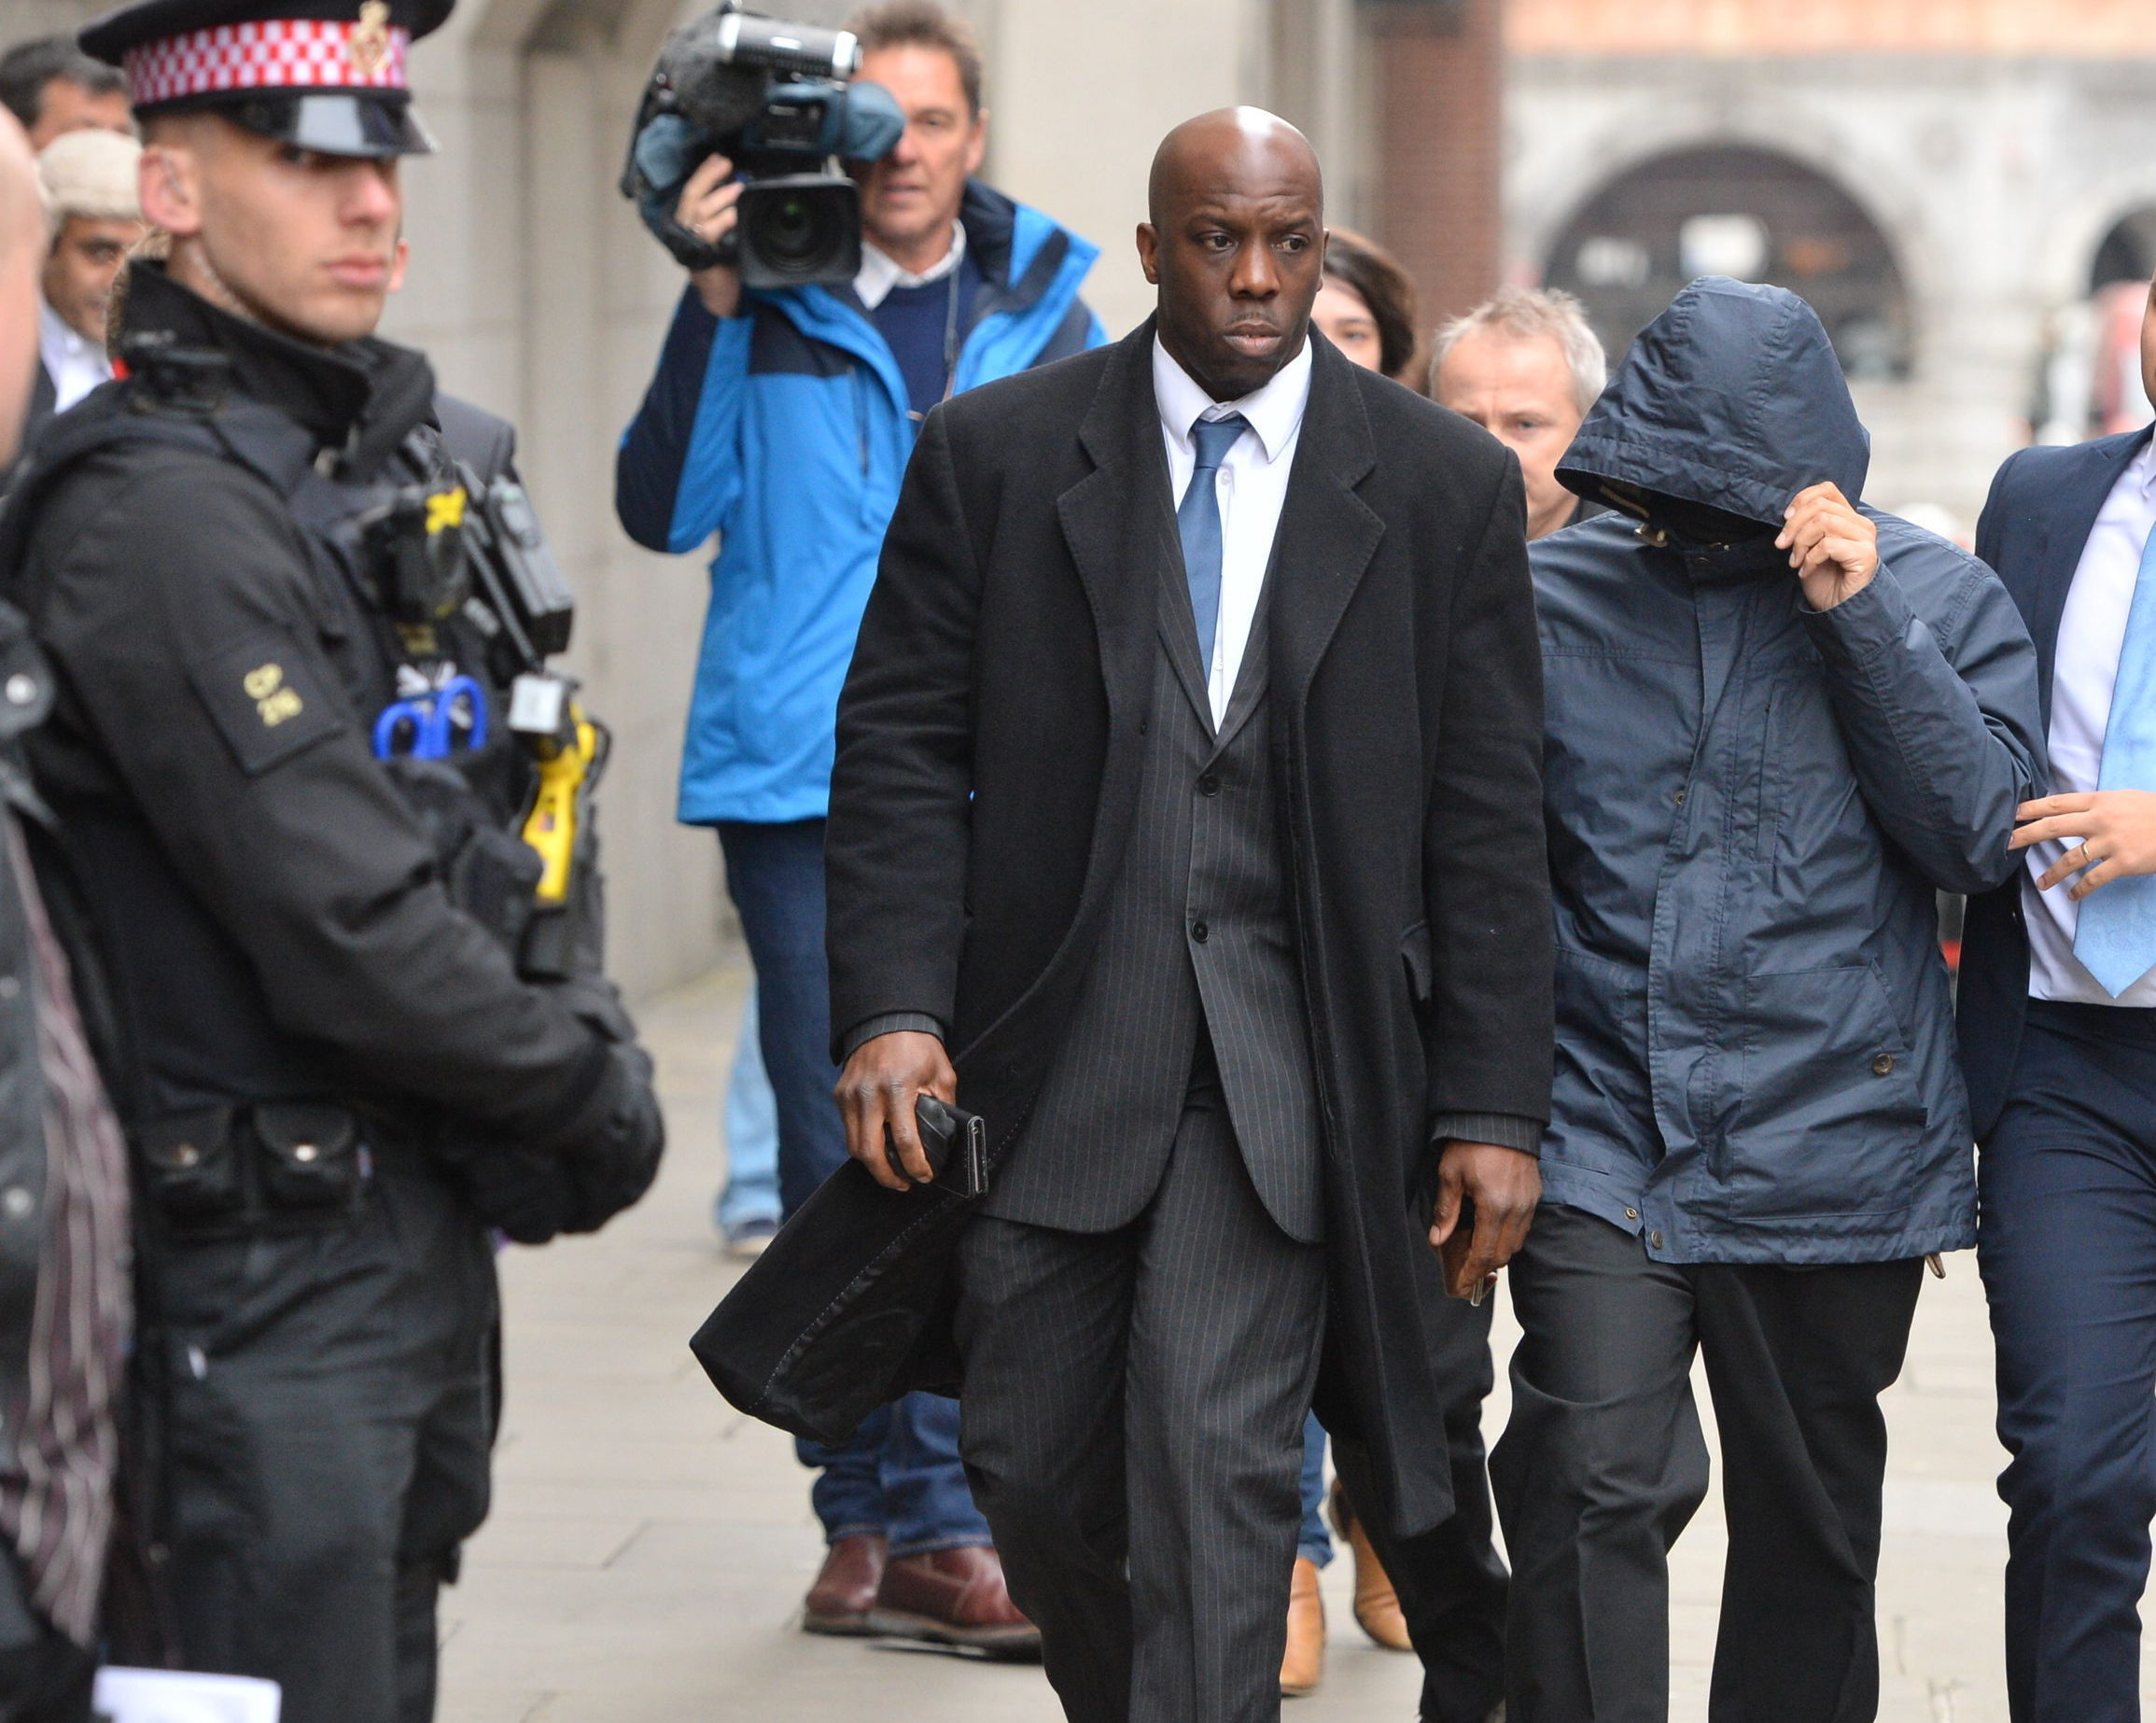 Fake Sheikh Mazher Mahmood (second right) arrives at the Old Bailey, London. Picture: Dominic Lipinski/PA Wire